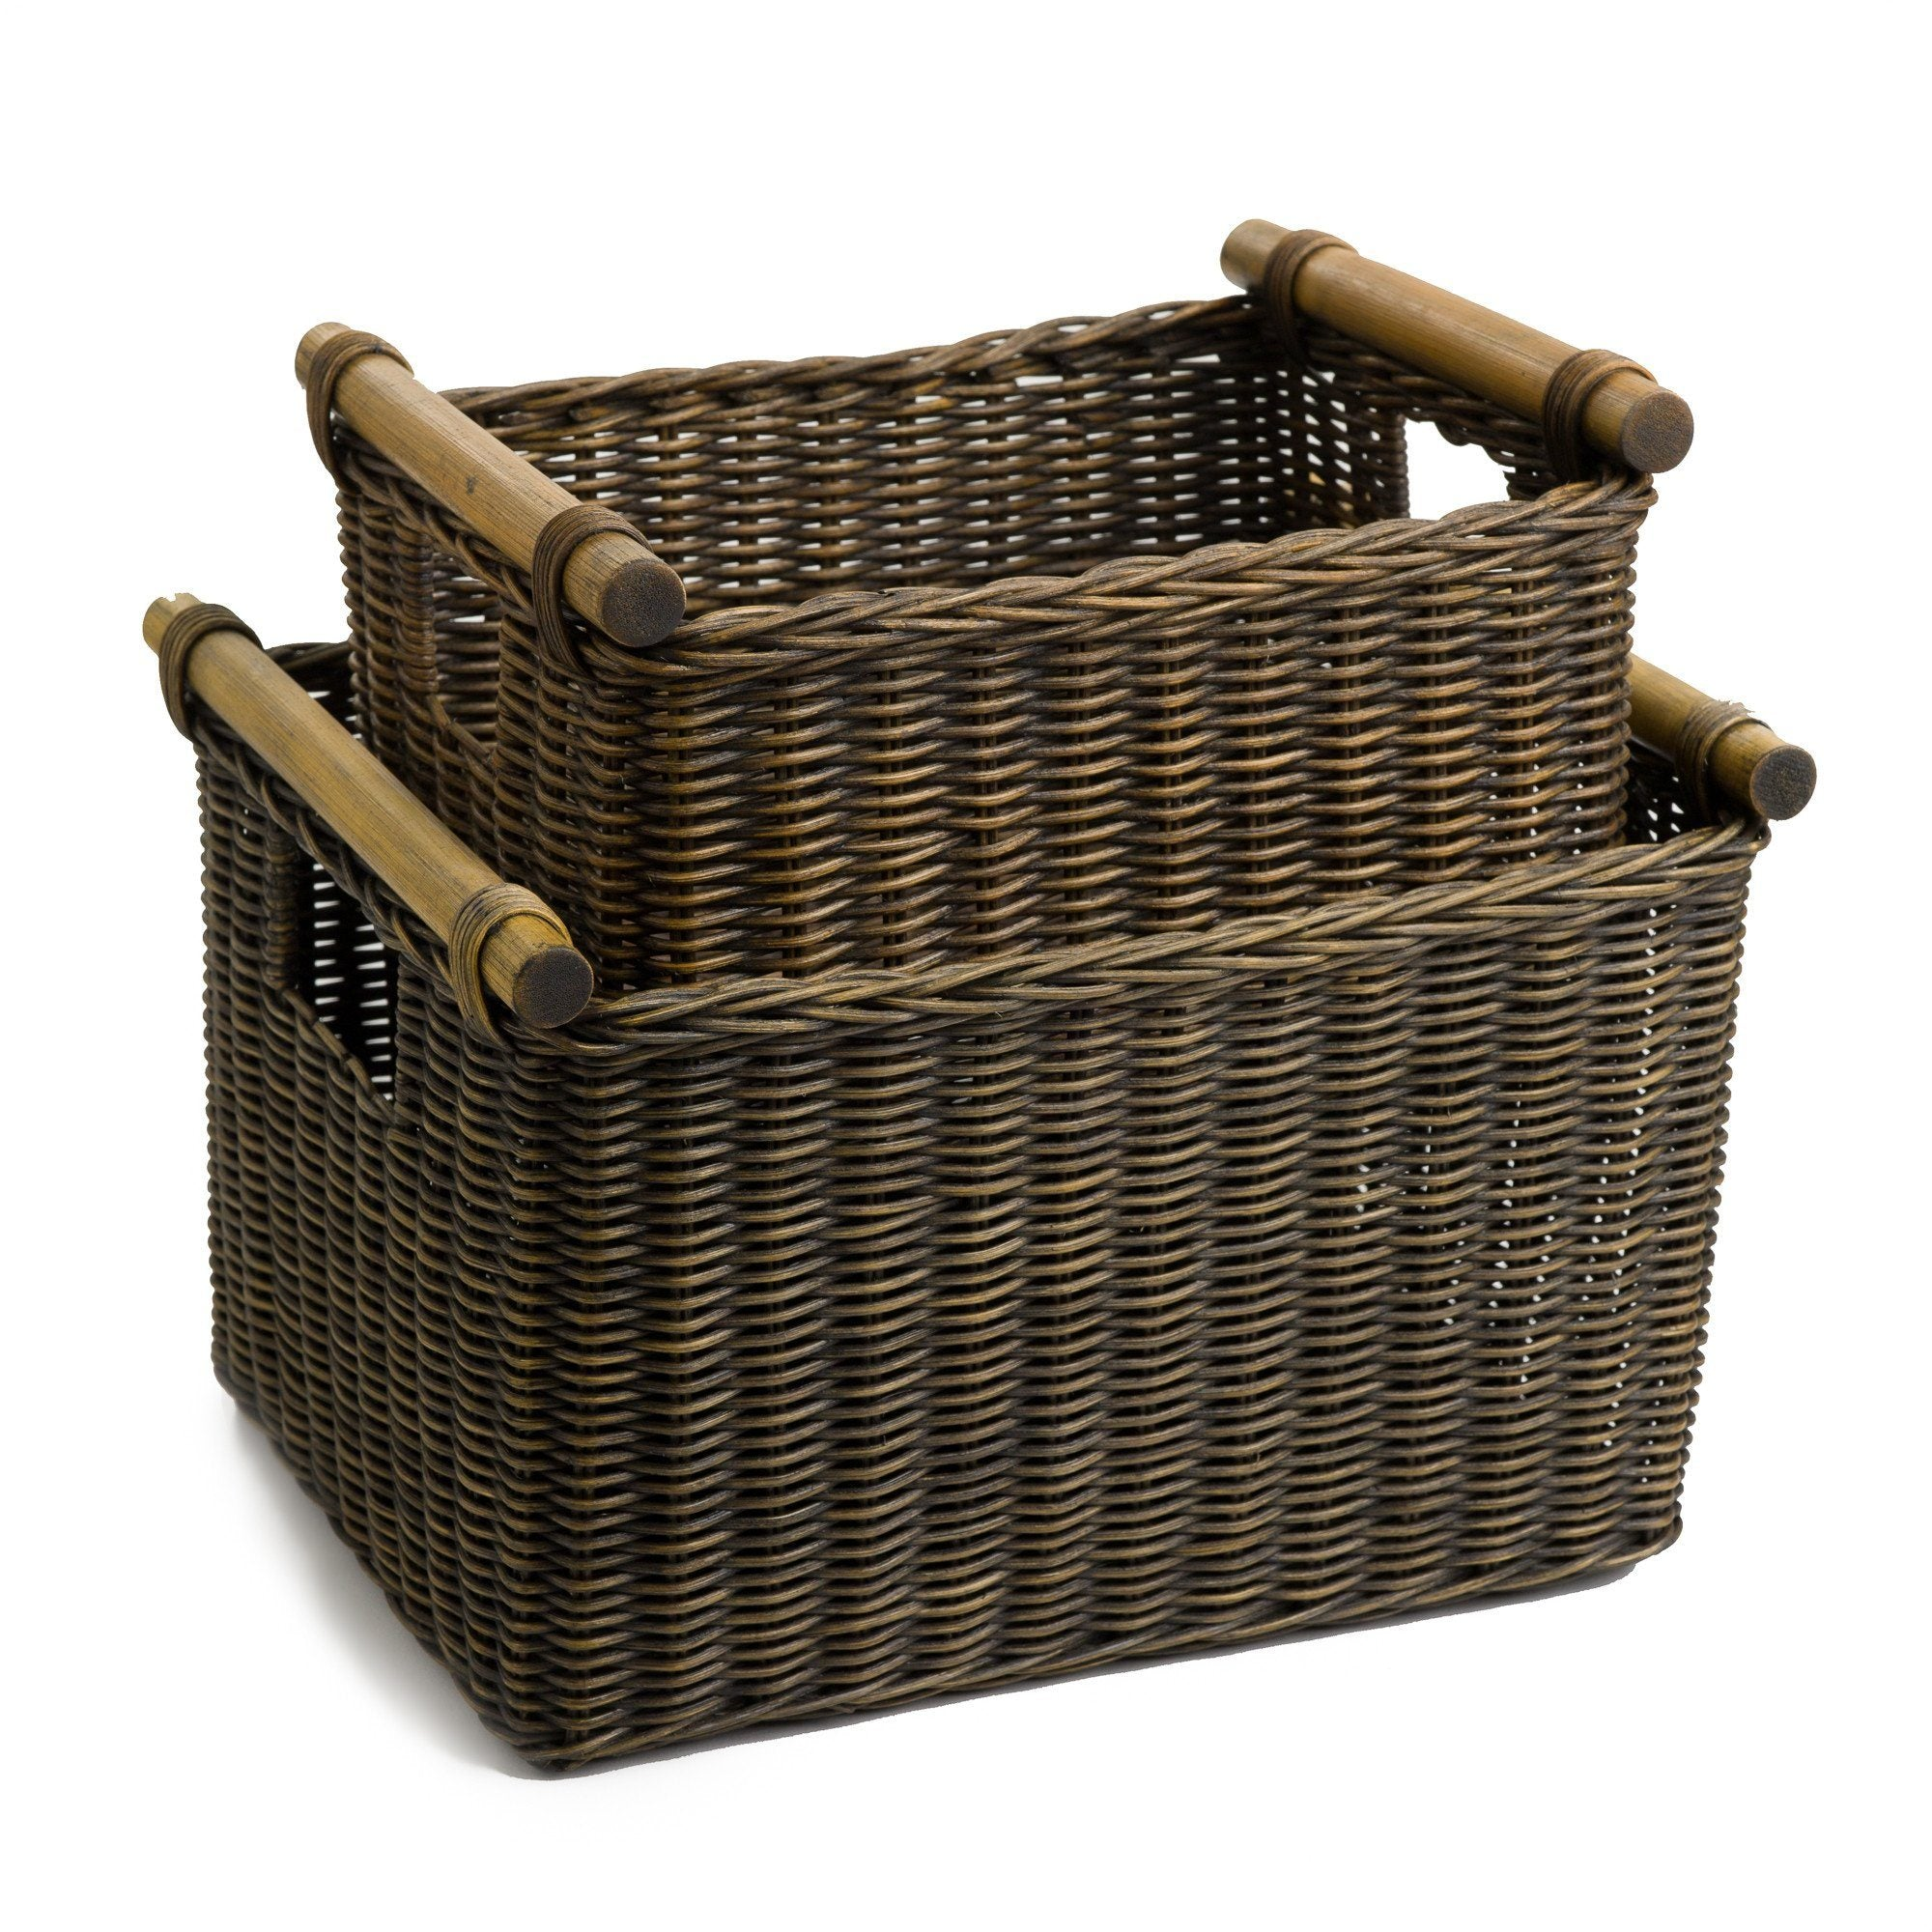 Merveilleux The Basket Lady Deep Wicker DVD Or Paper Basket ...